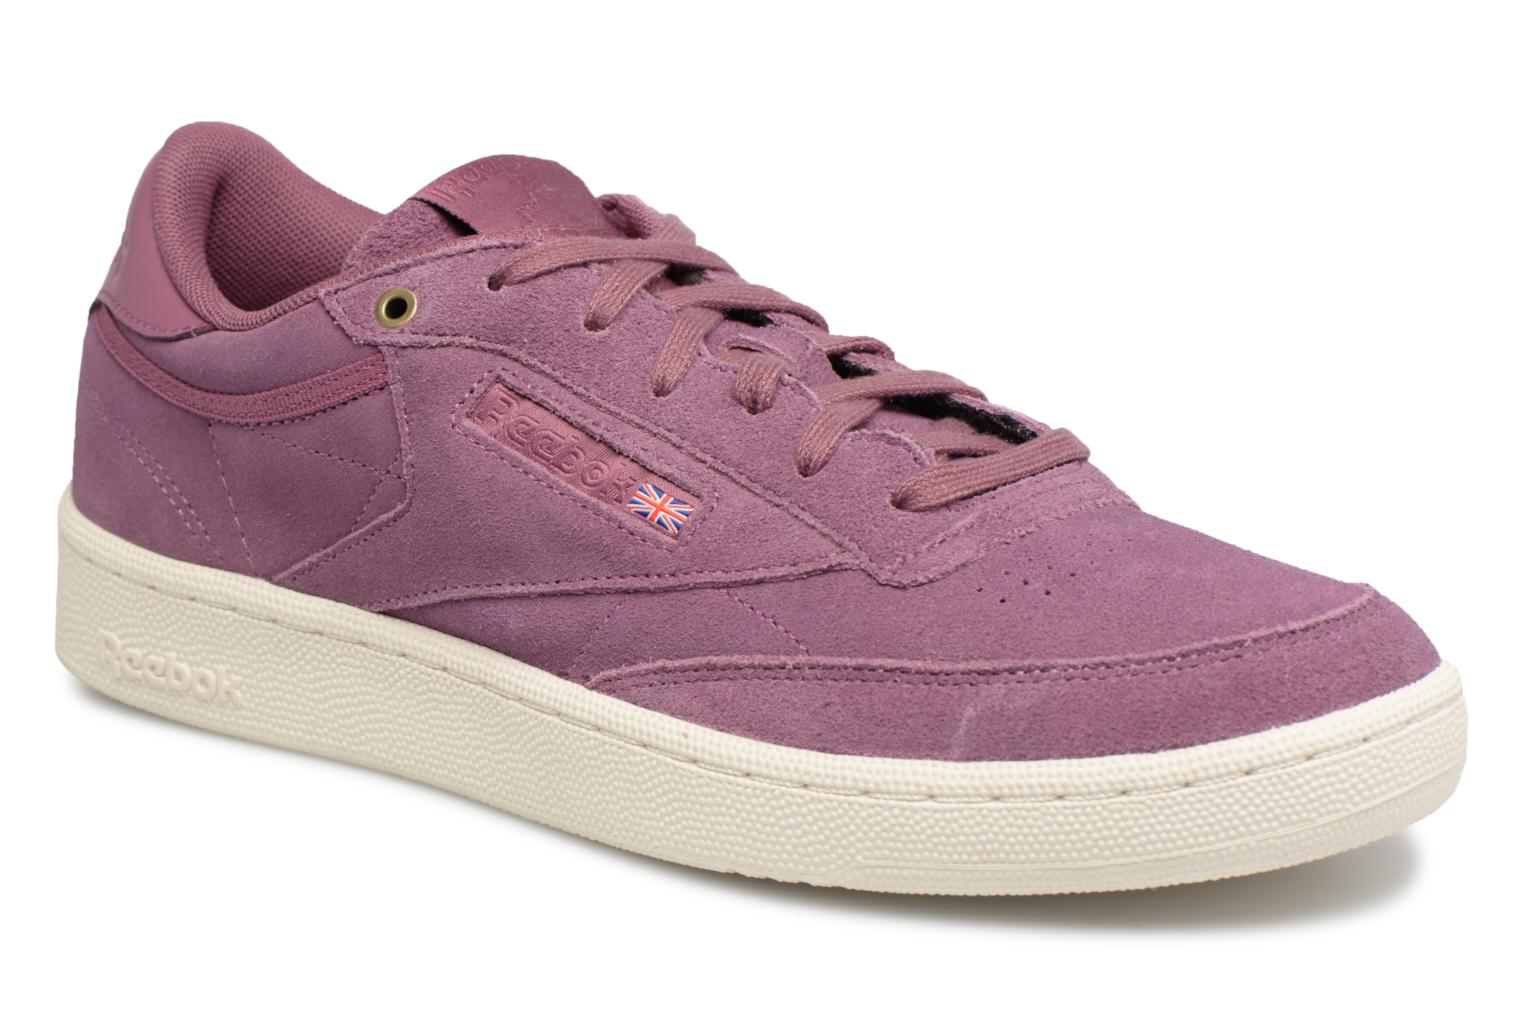 Marques Chaussure homme Reebok homme Club C 85 Montana Cans Collaboration Dusty Pink/Chalk